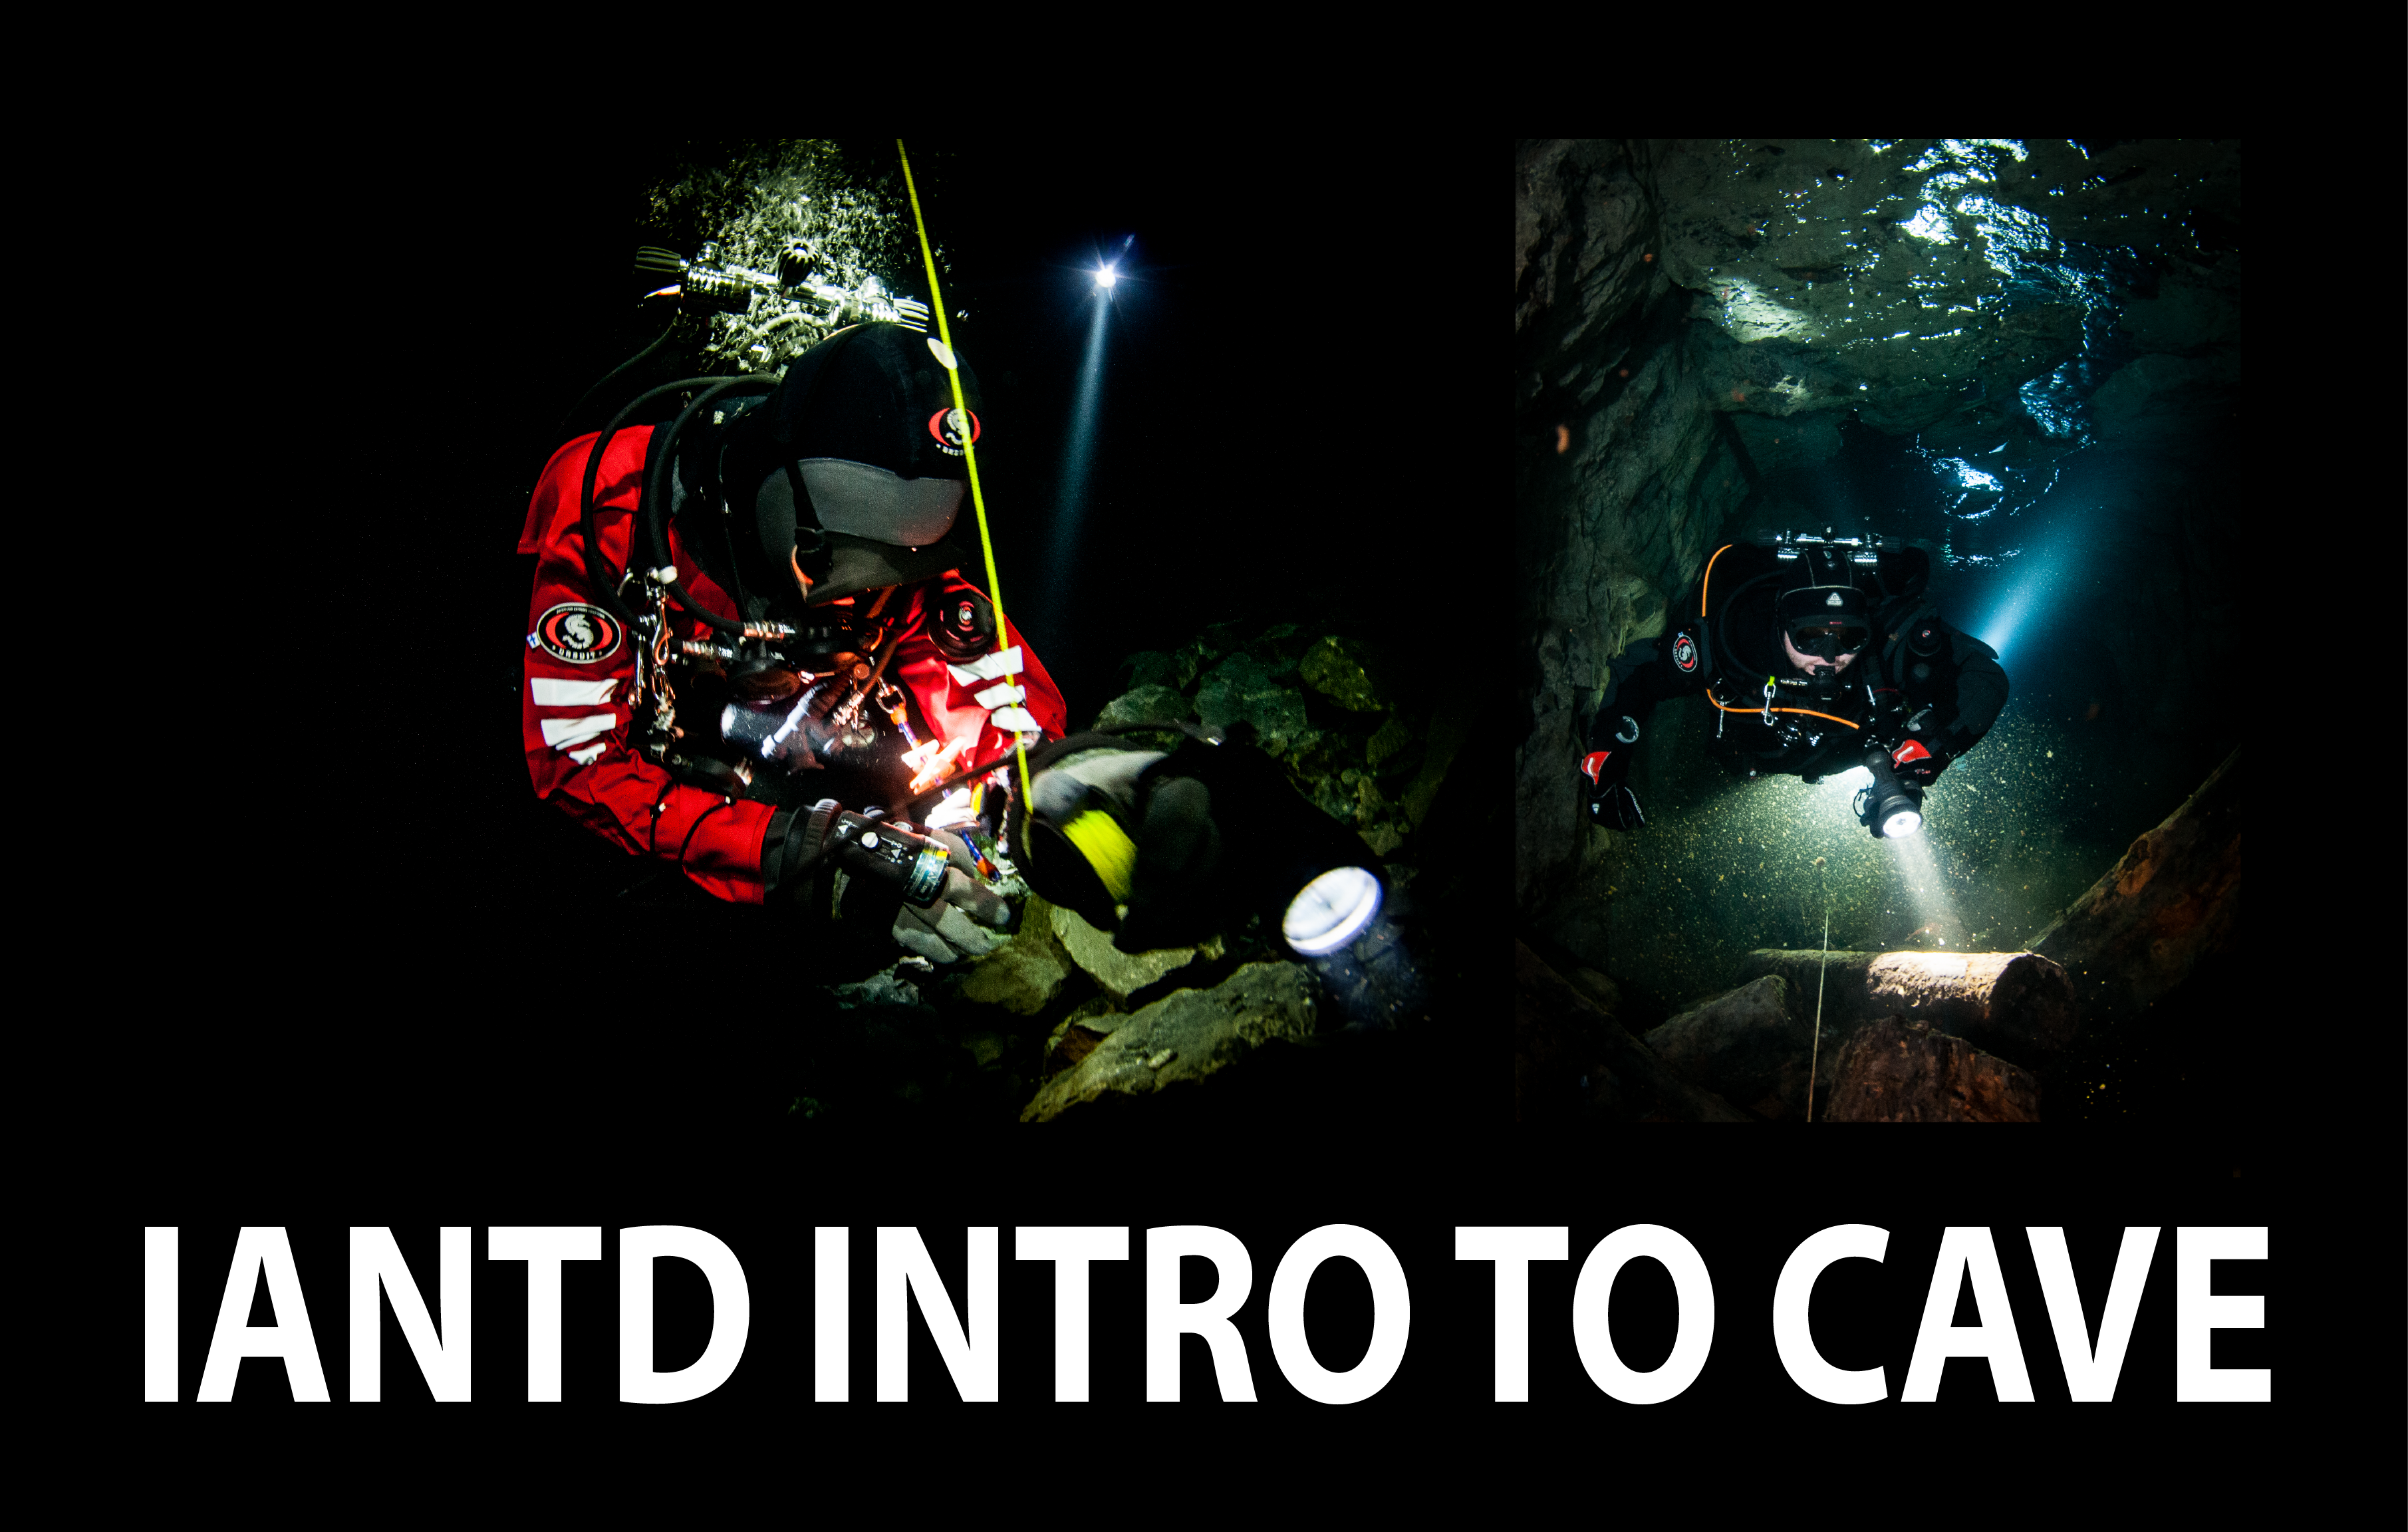 IANTD Intro To Cave